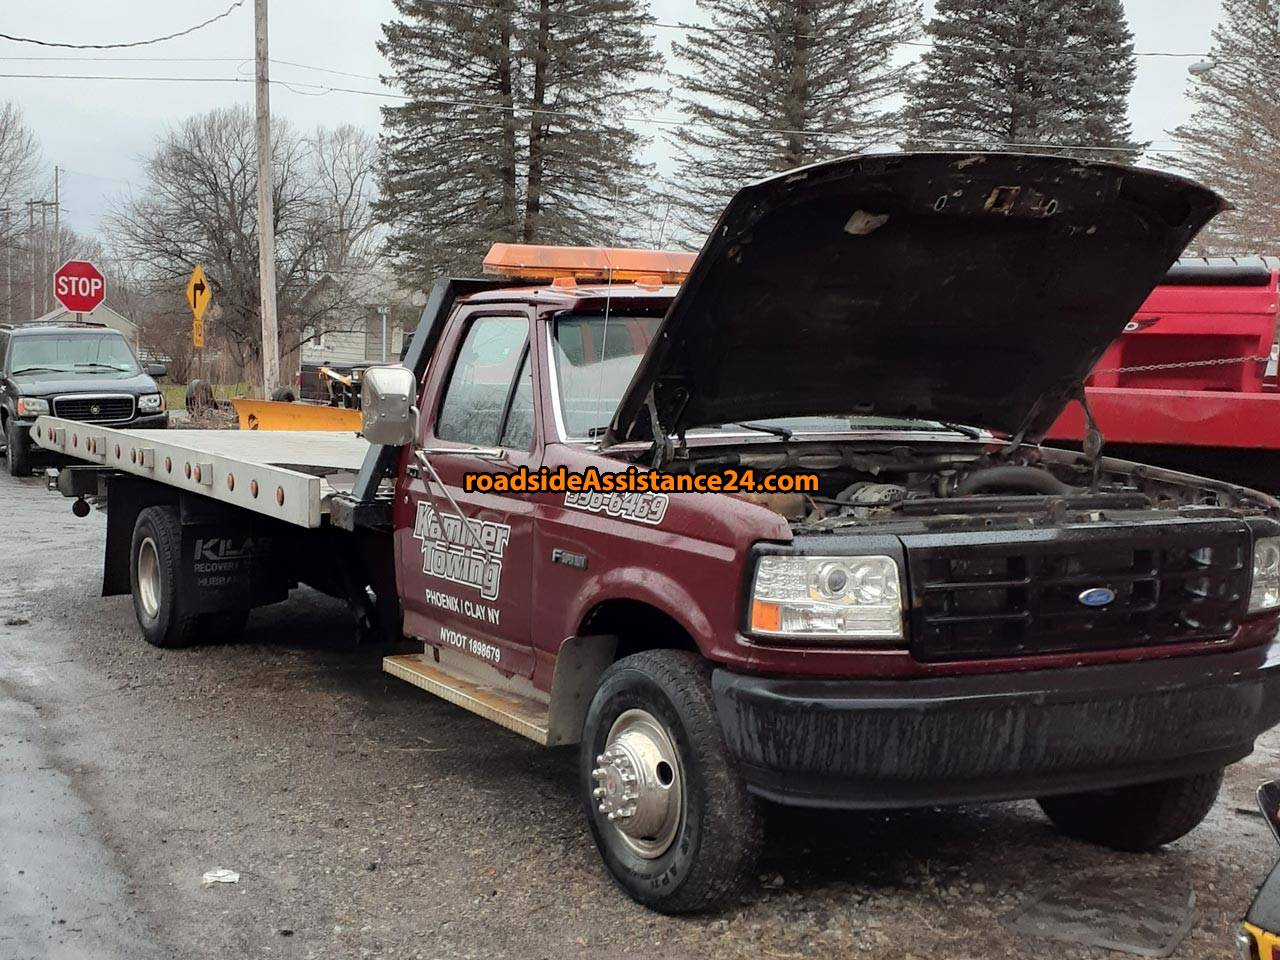 Syracuse roadside assistance